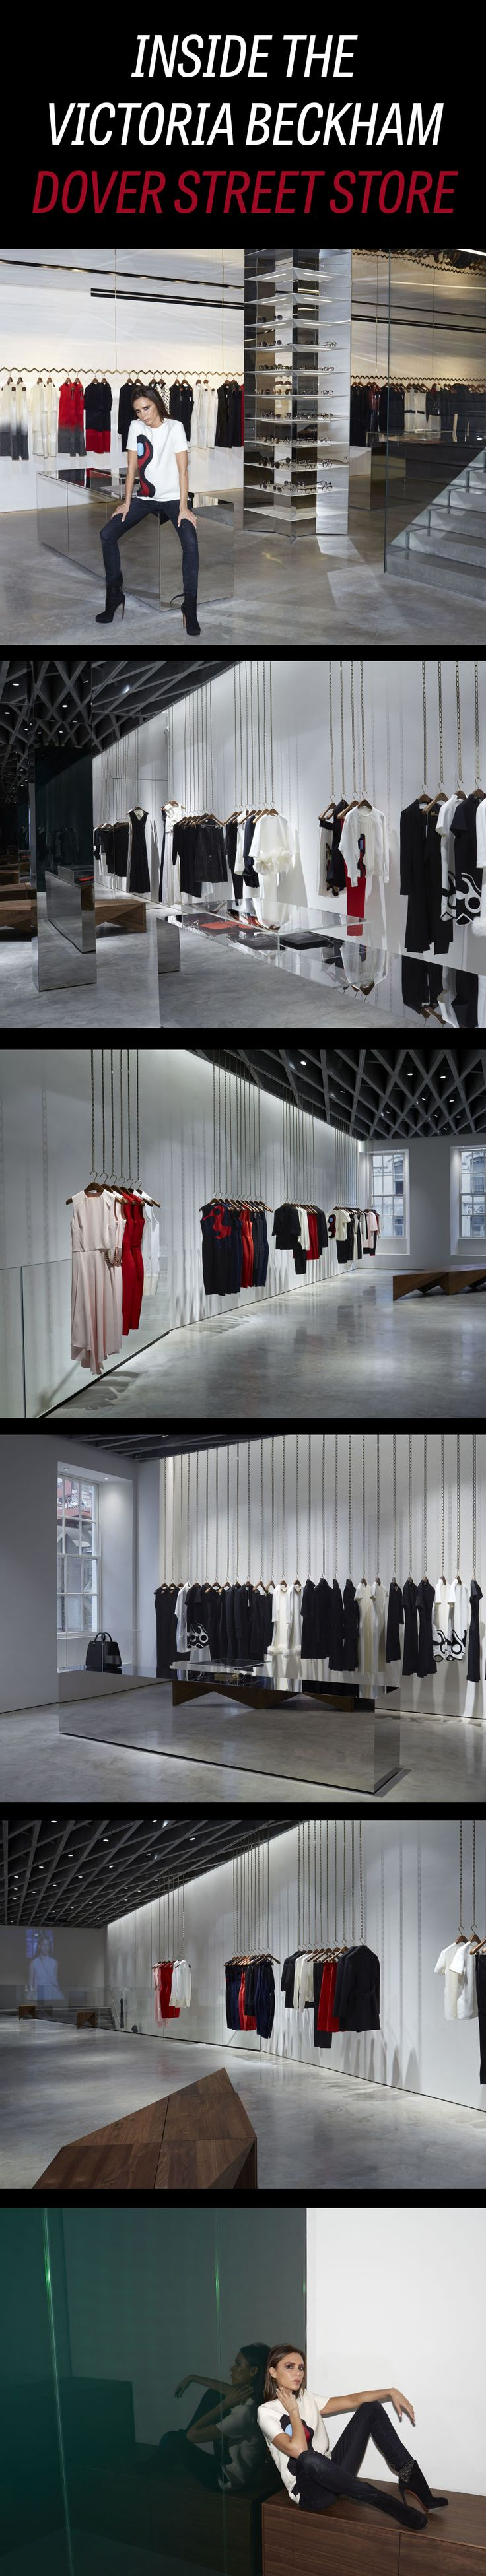 Dover street market store new york city retail design blog - Victoria Beckham Opens First Store On London S Dover Street